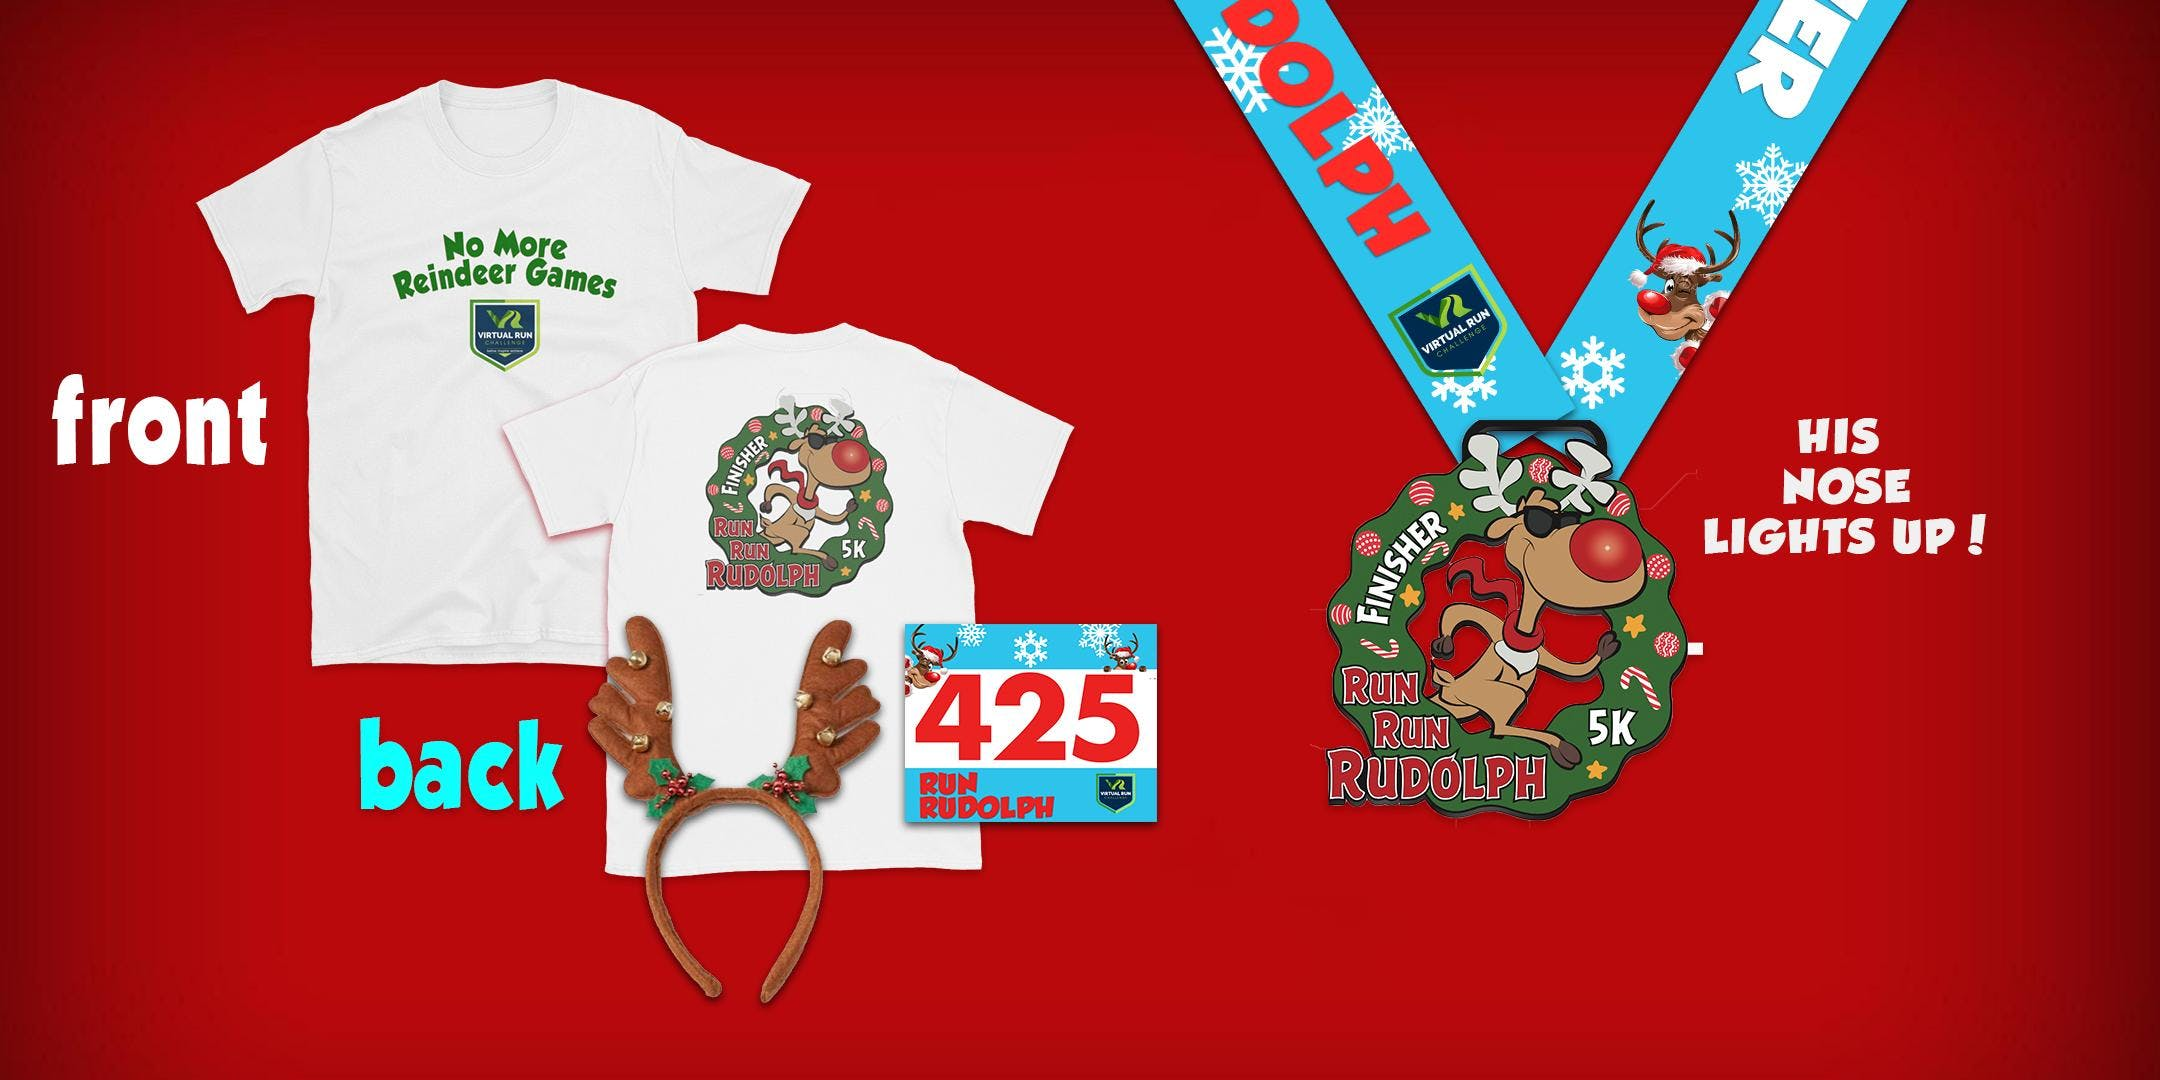 Run Run Rudolph Virtual 5k Run Walk - Tempe